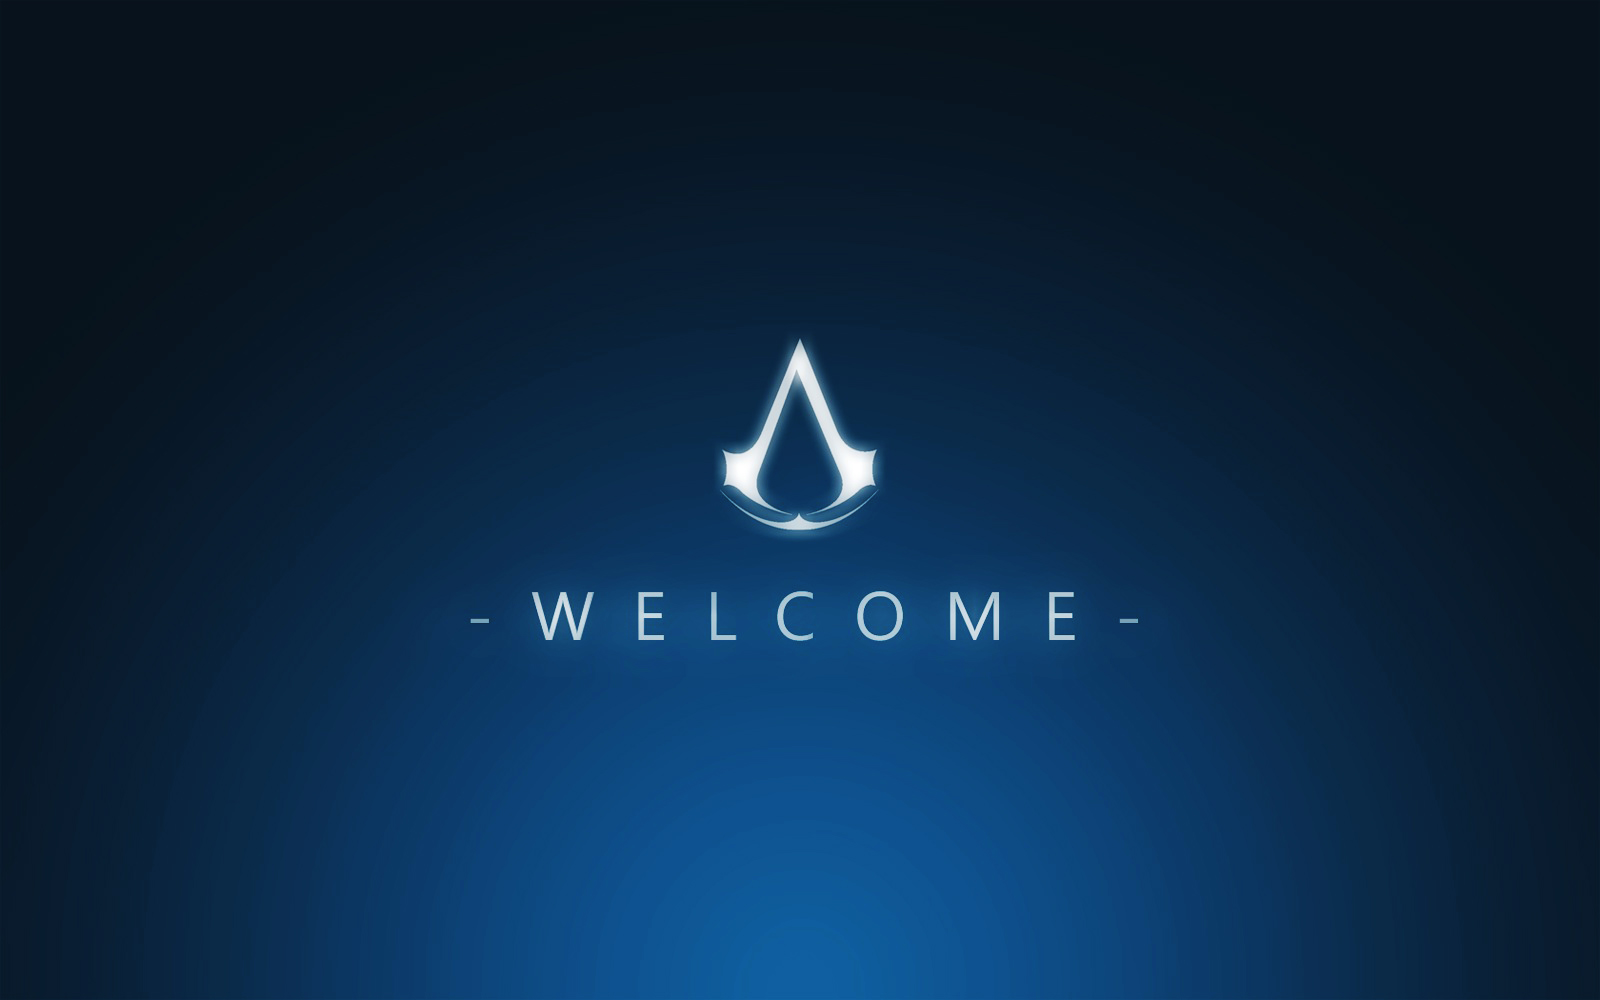 Welcome Wallpaper